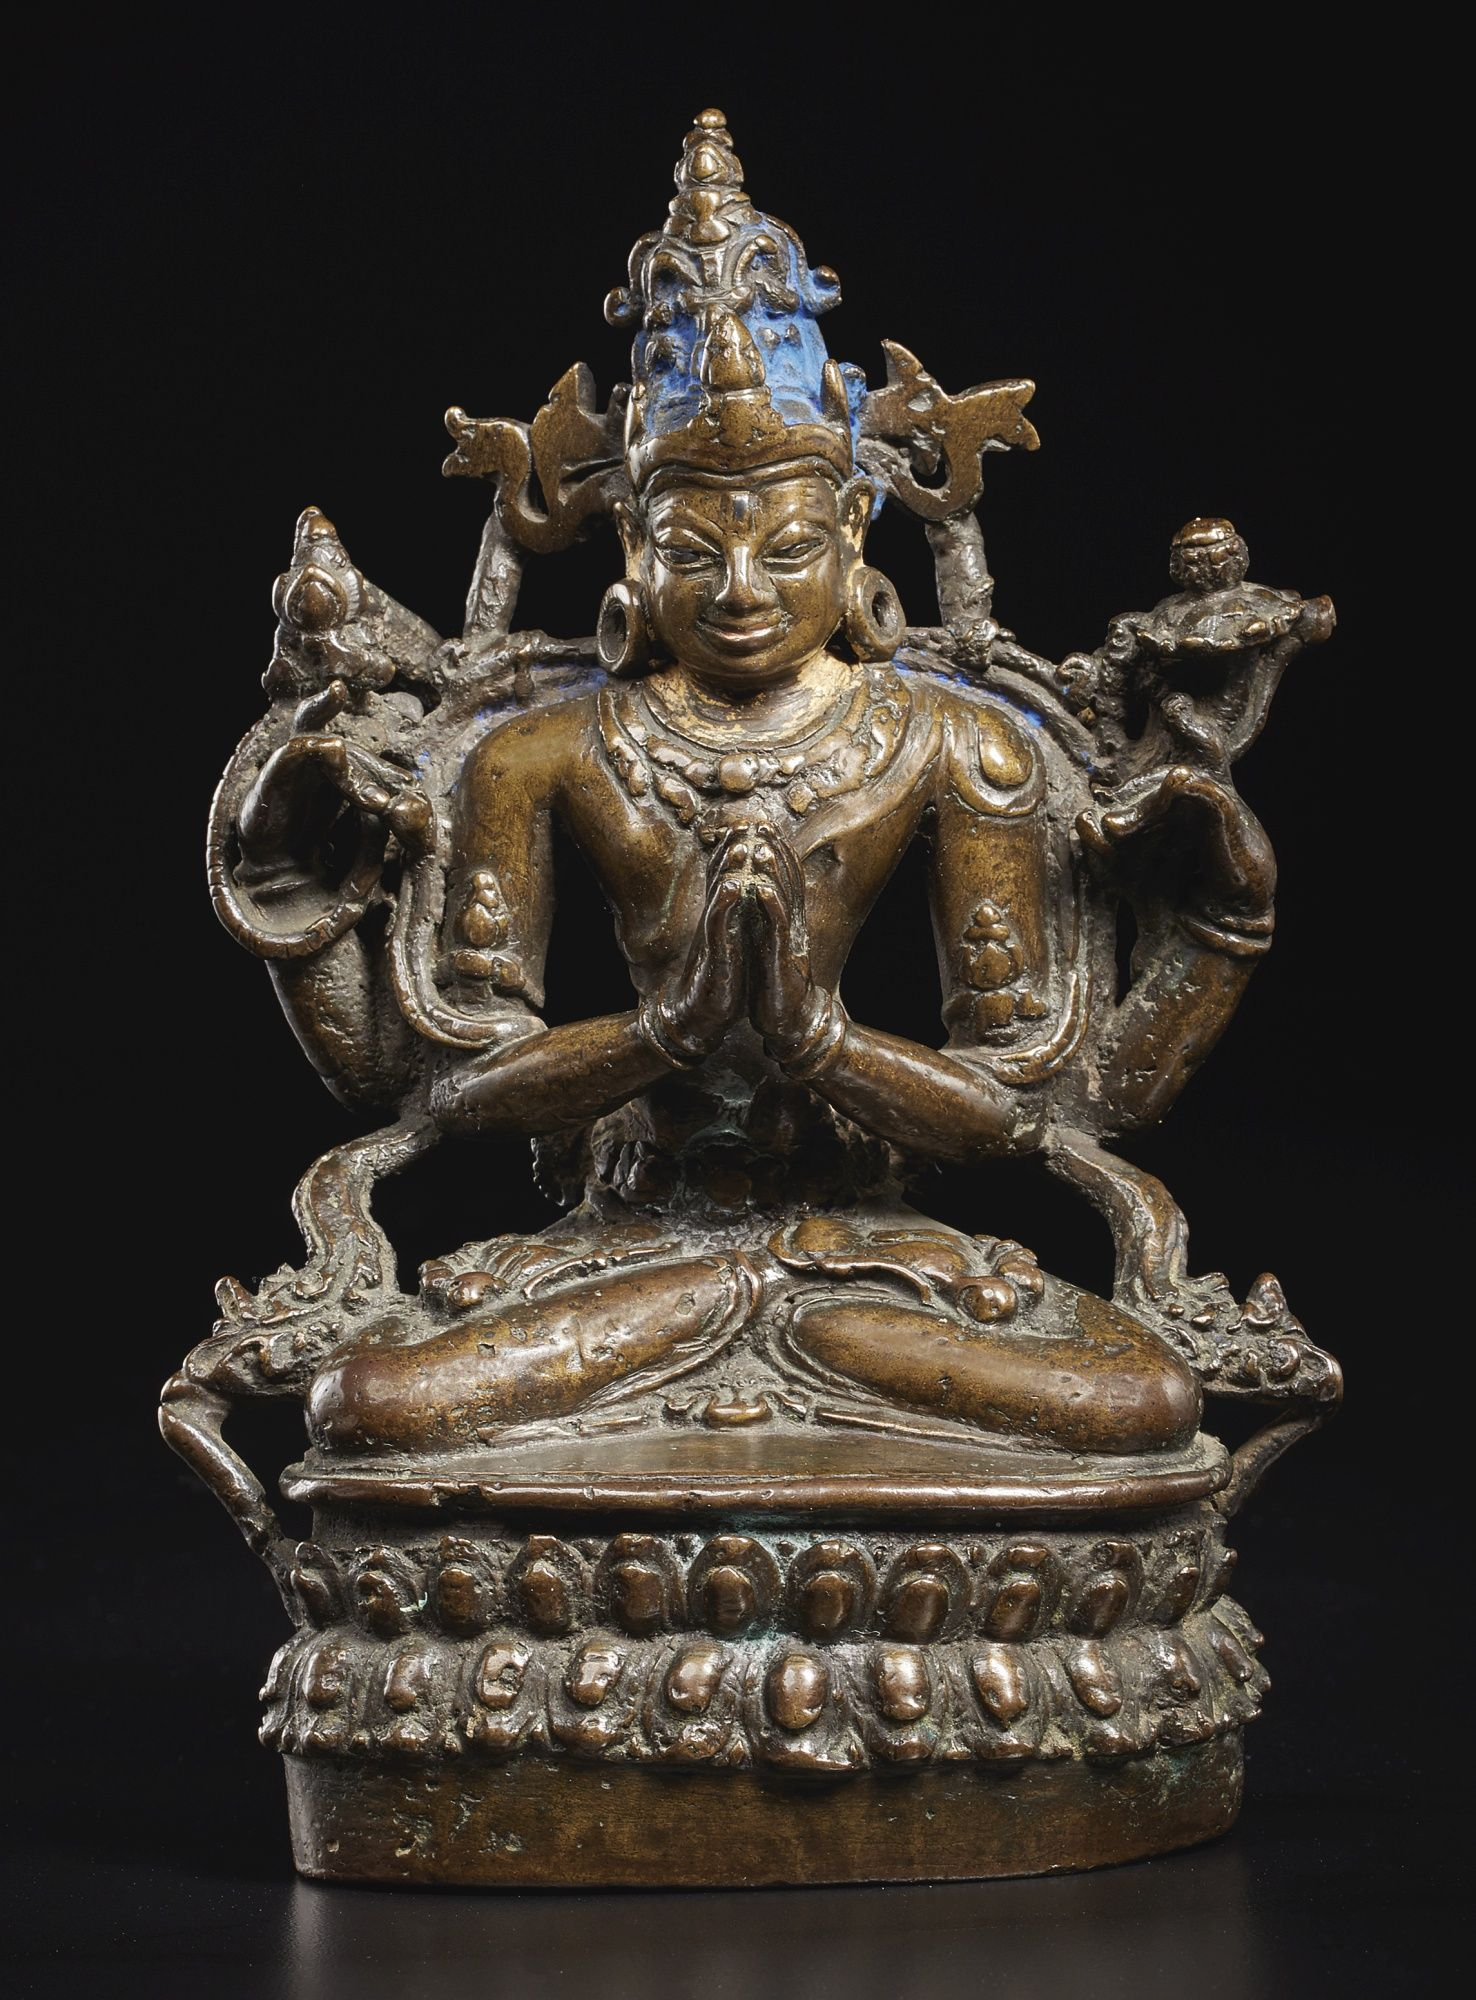 A BRONZE FIGURE DEPICTING CHATURBHUJA LOKESHVARA Eastern